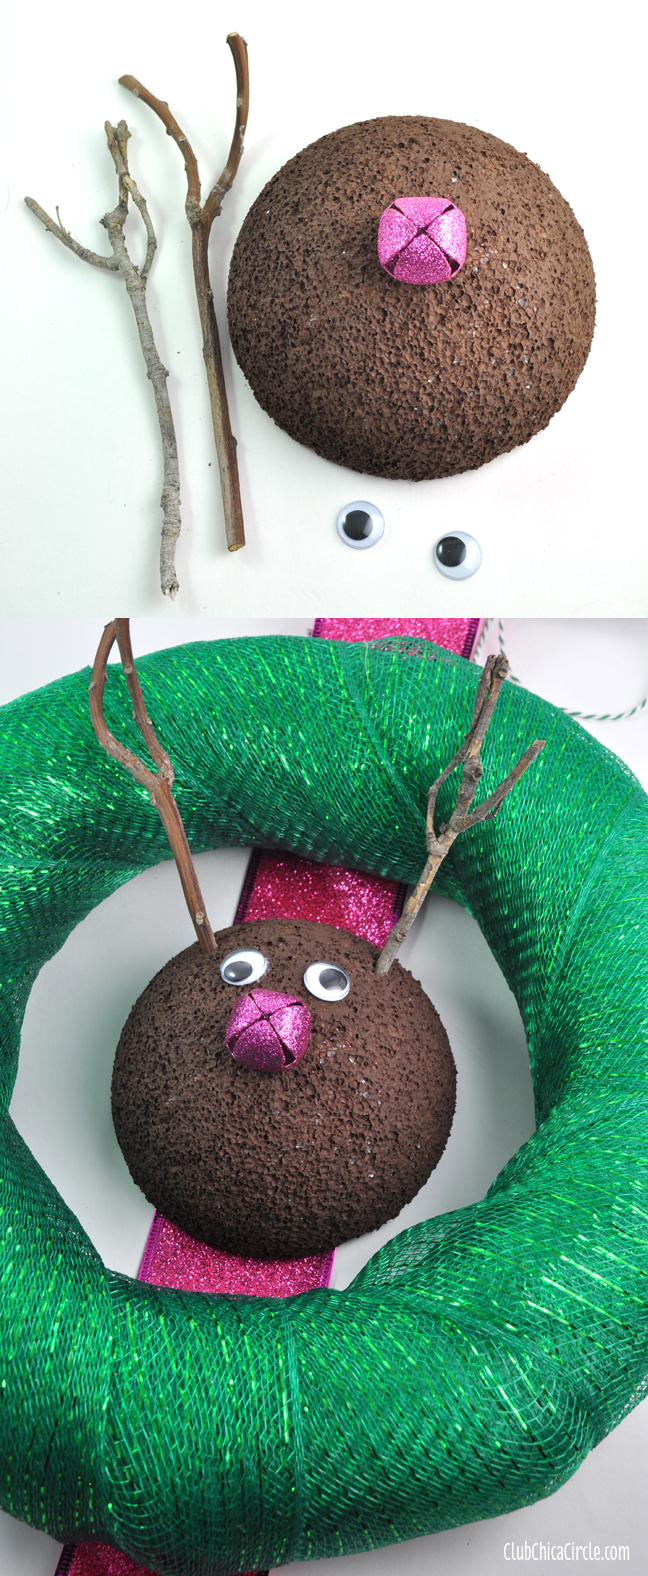 cute homemade reindeer wreath craft idea